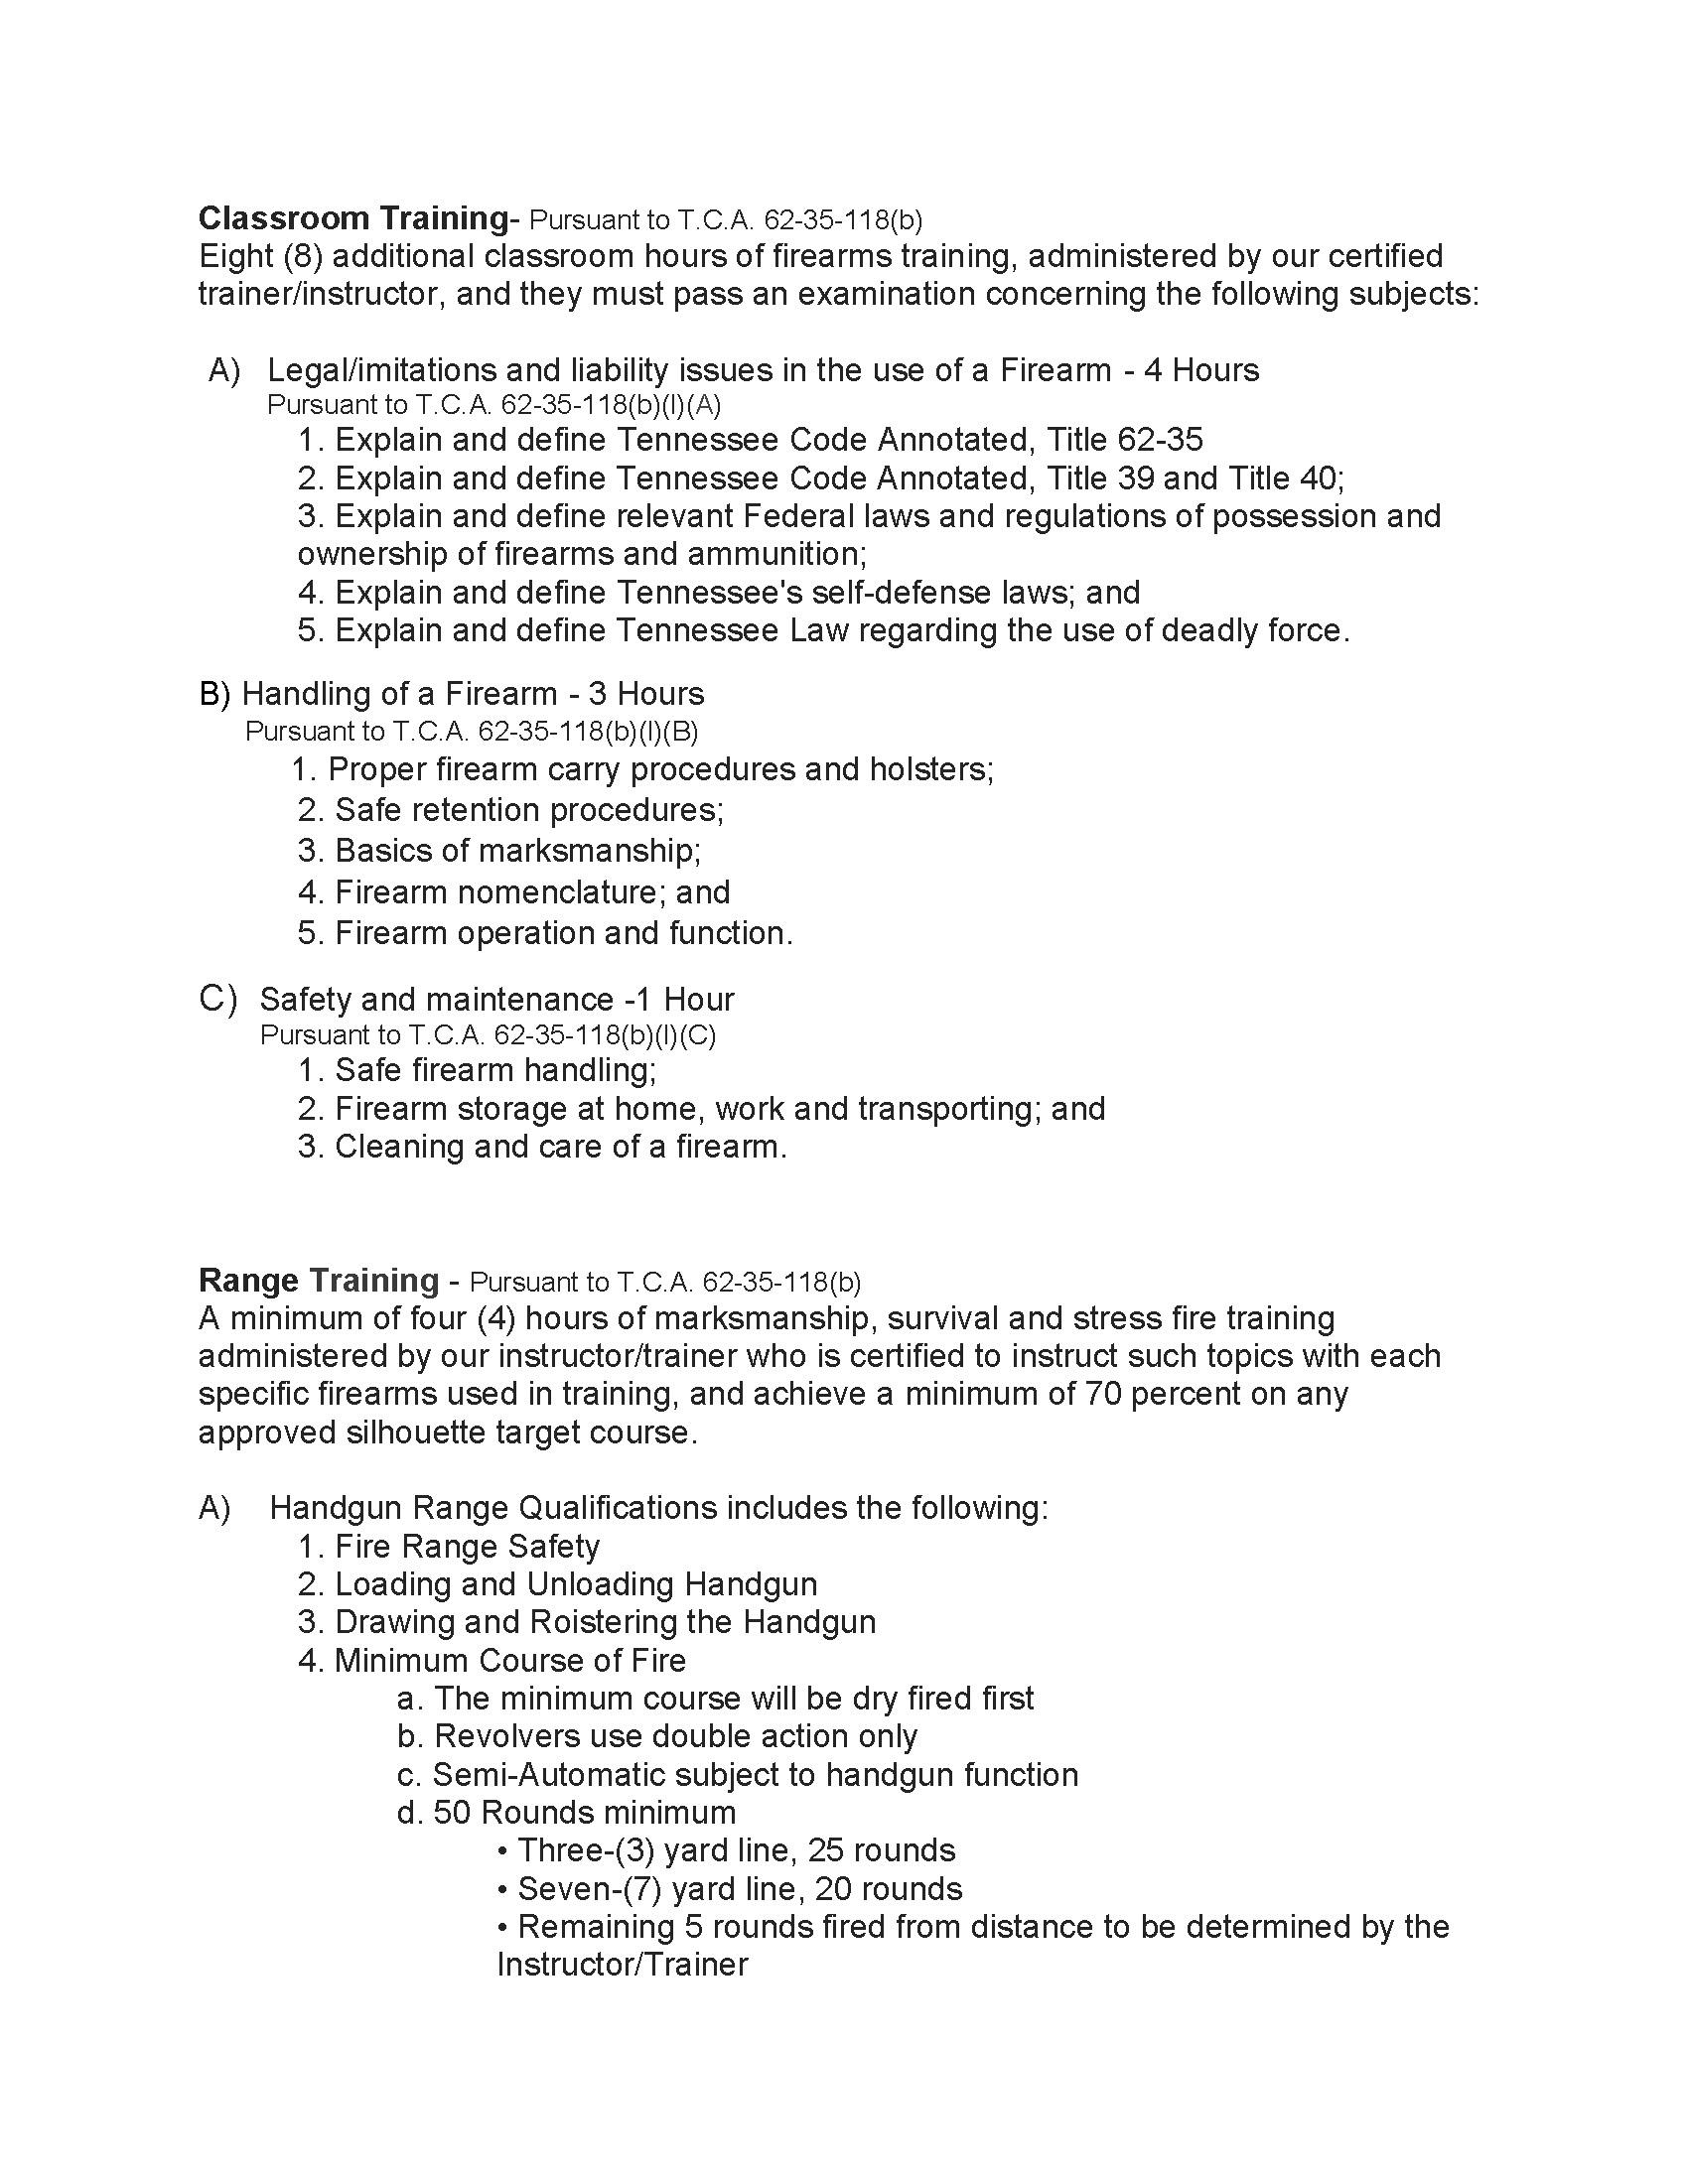 Firearms Training Curriculum Page 1